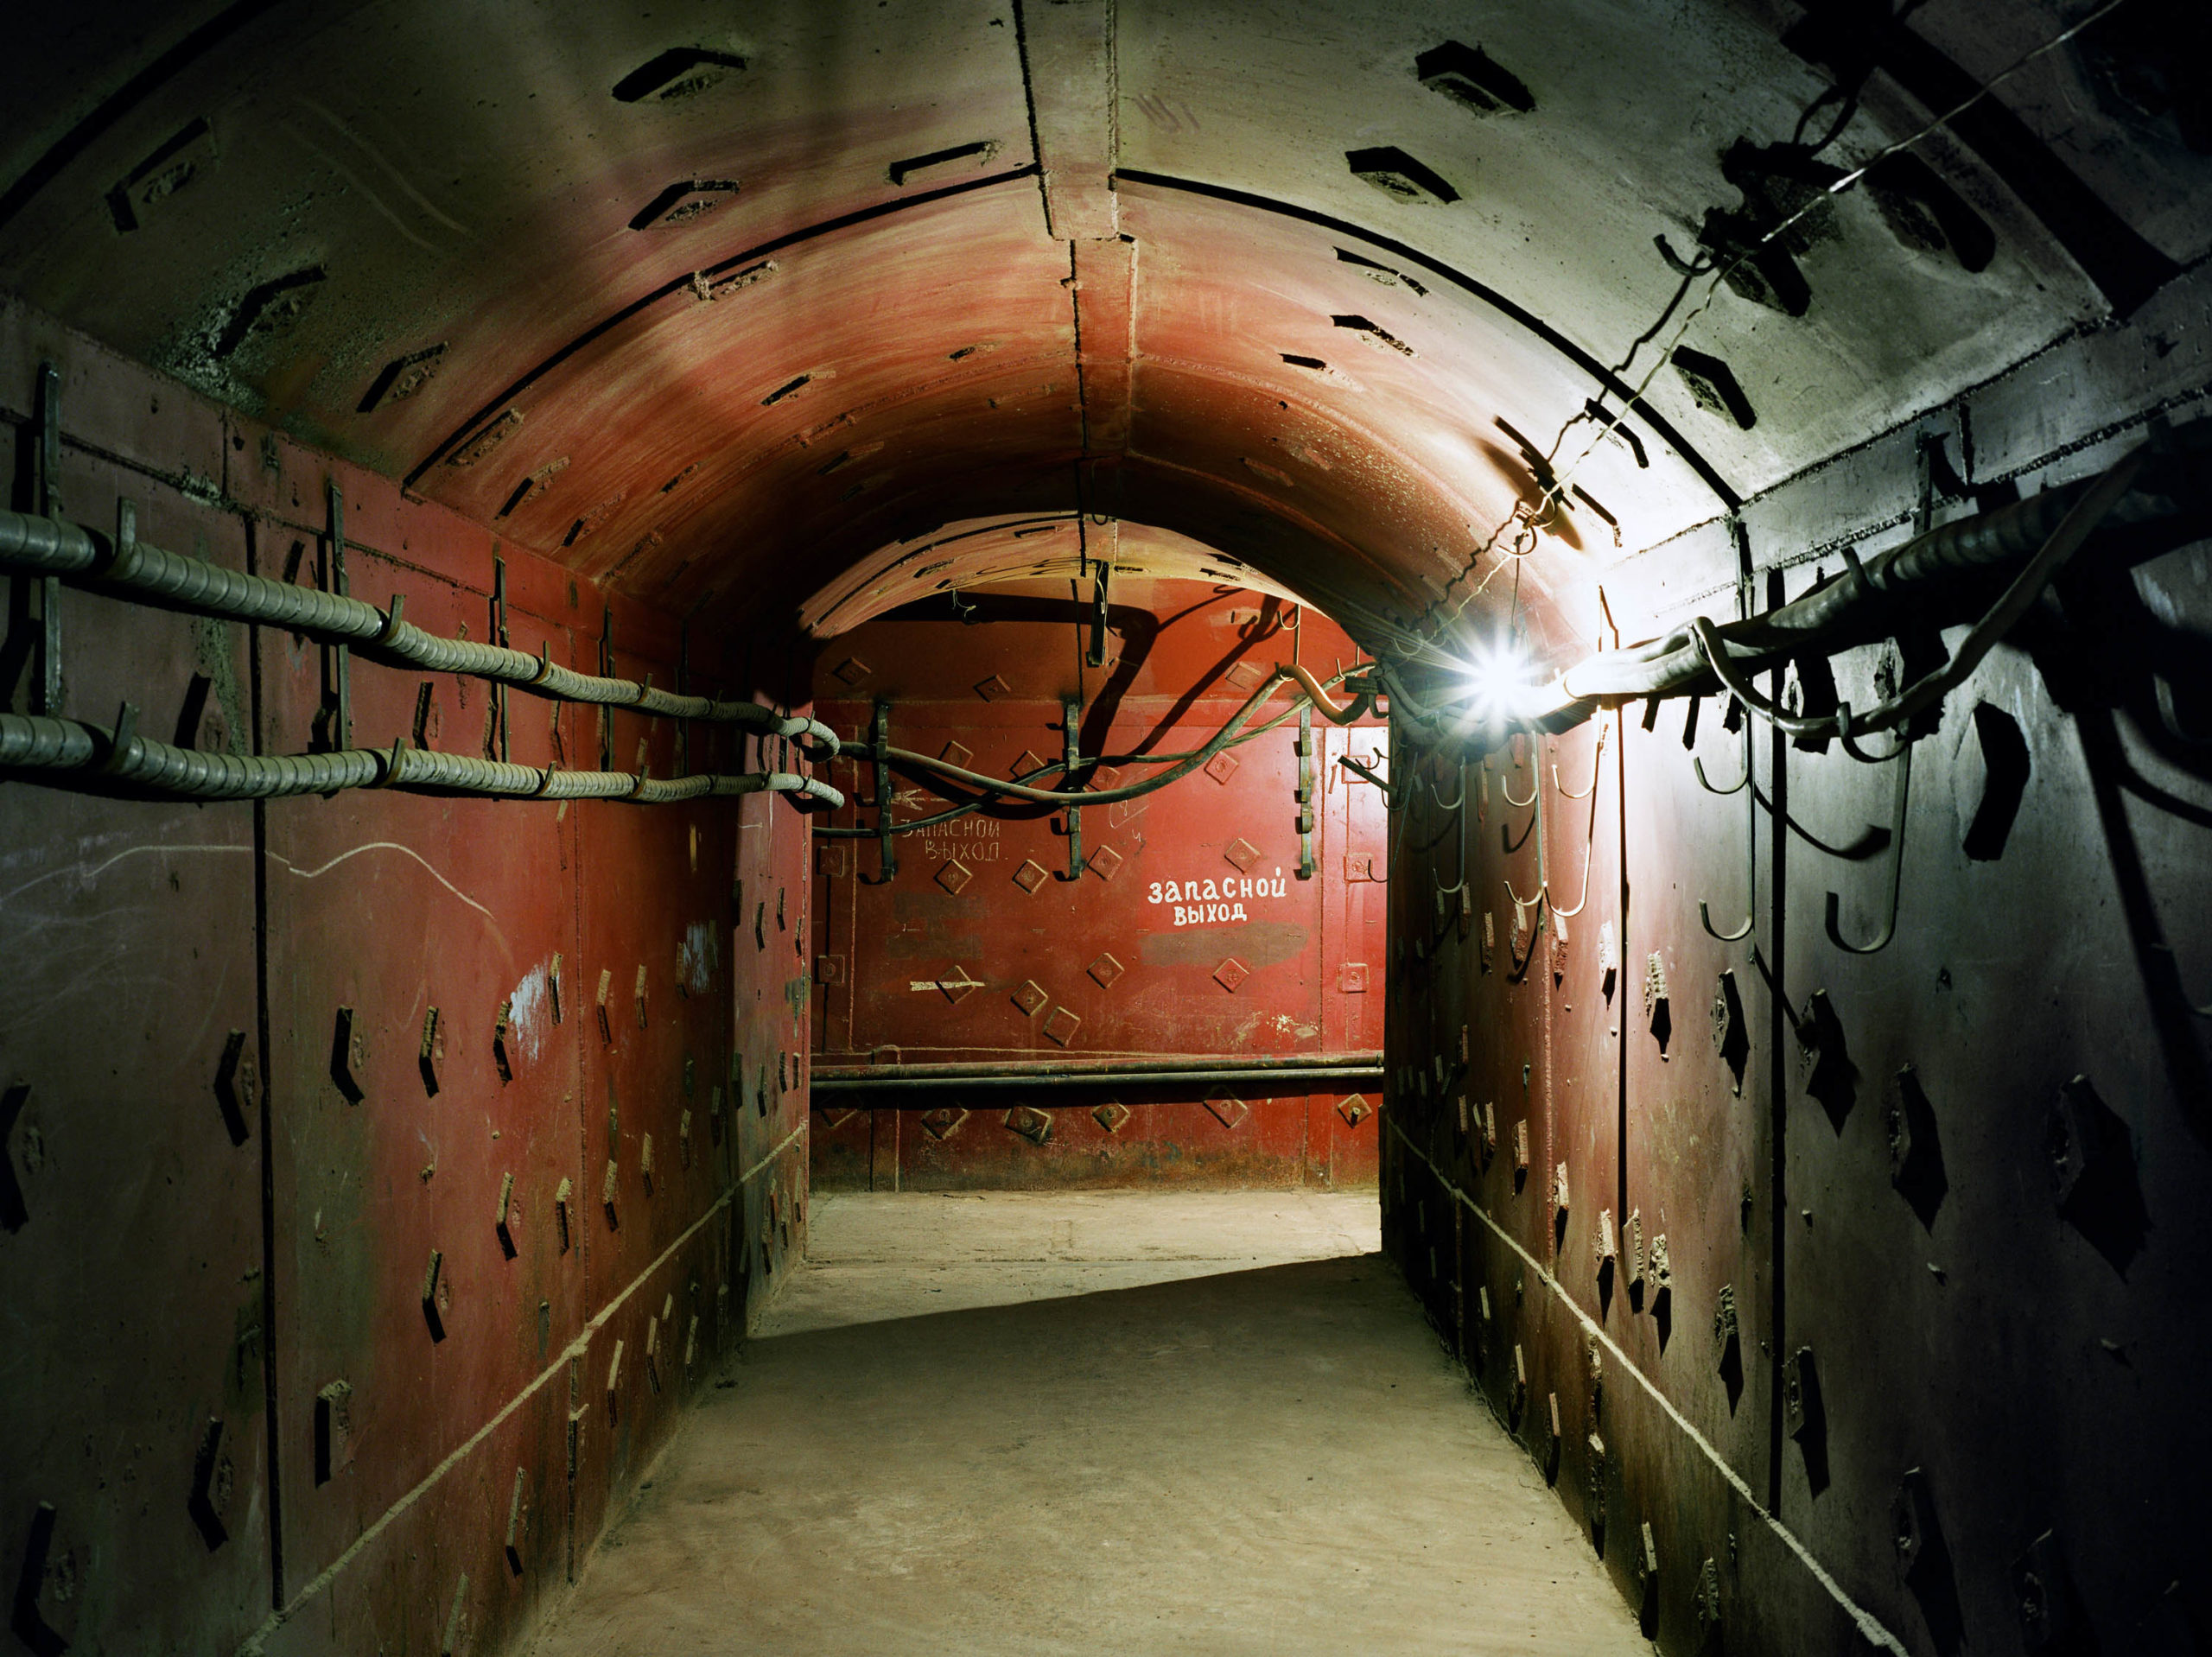 Russia. Underground bunker of the Soviet Army